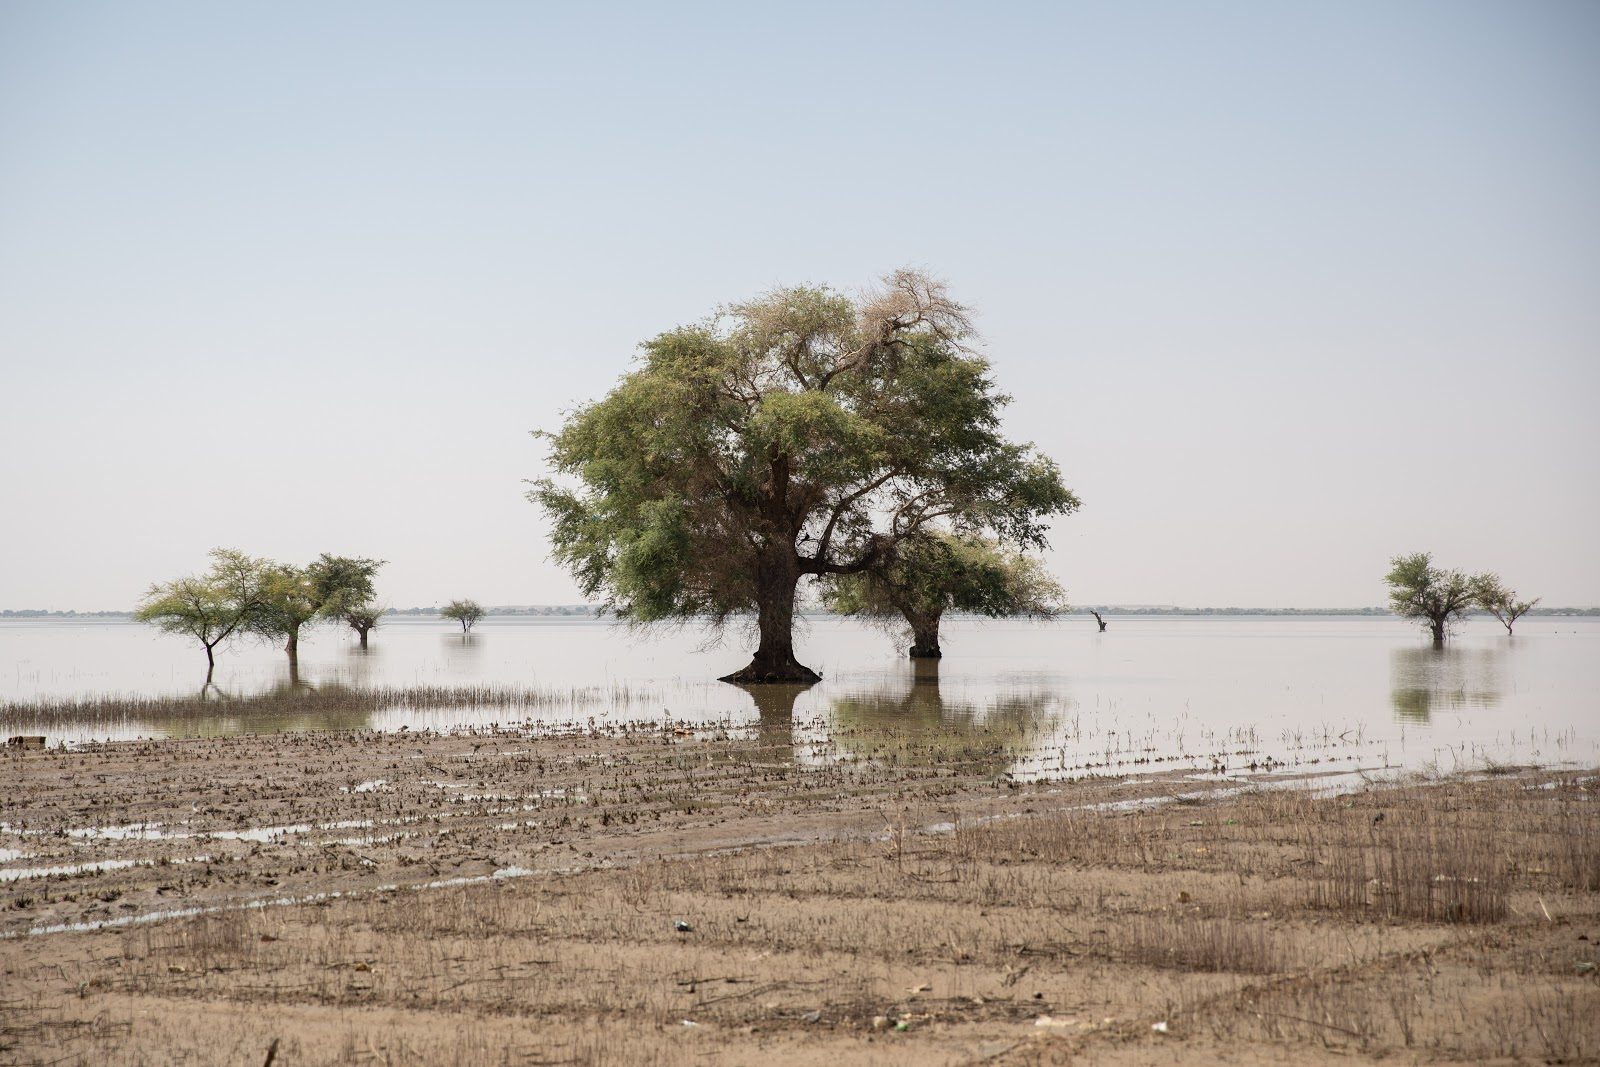 South Sudan's plans for conservation, as the country feels the impact of climate change